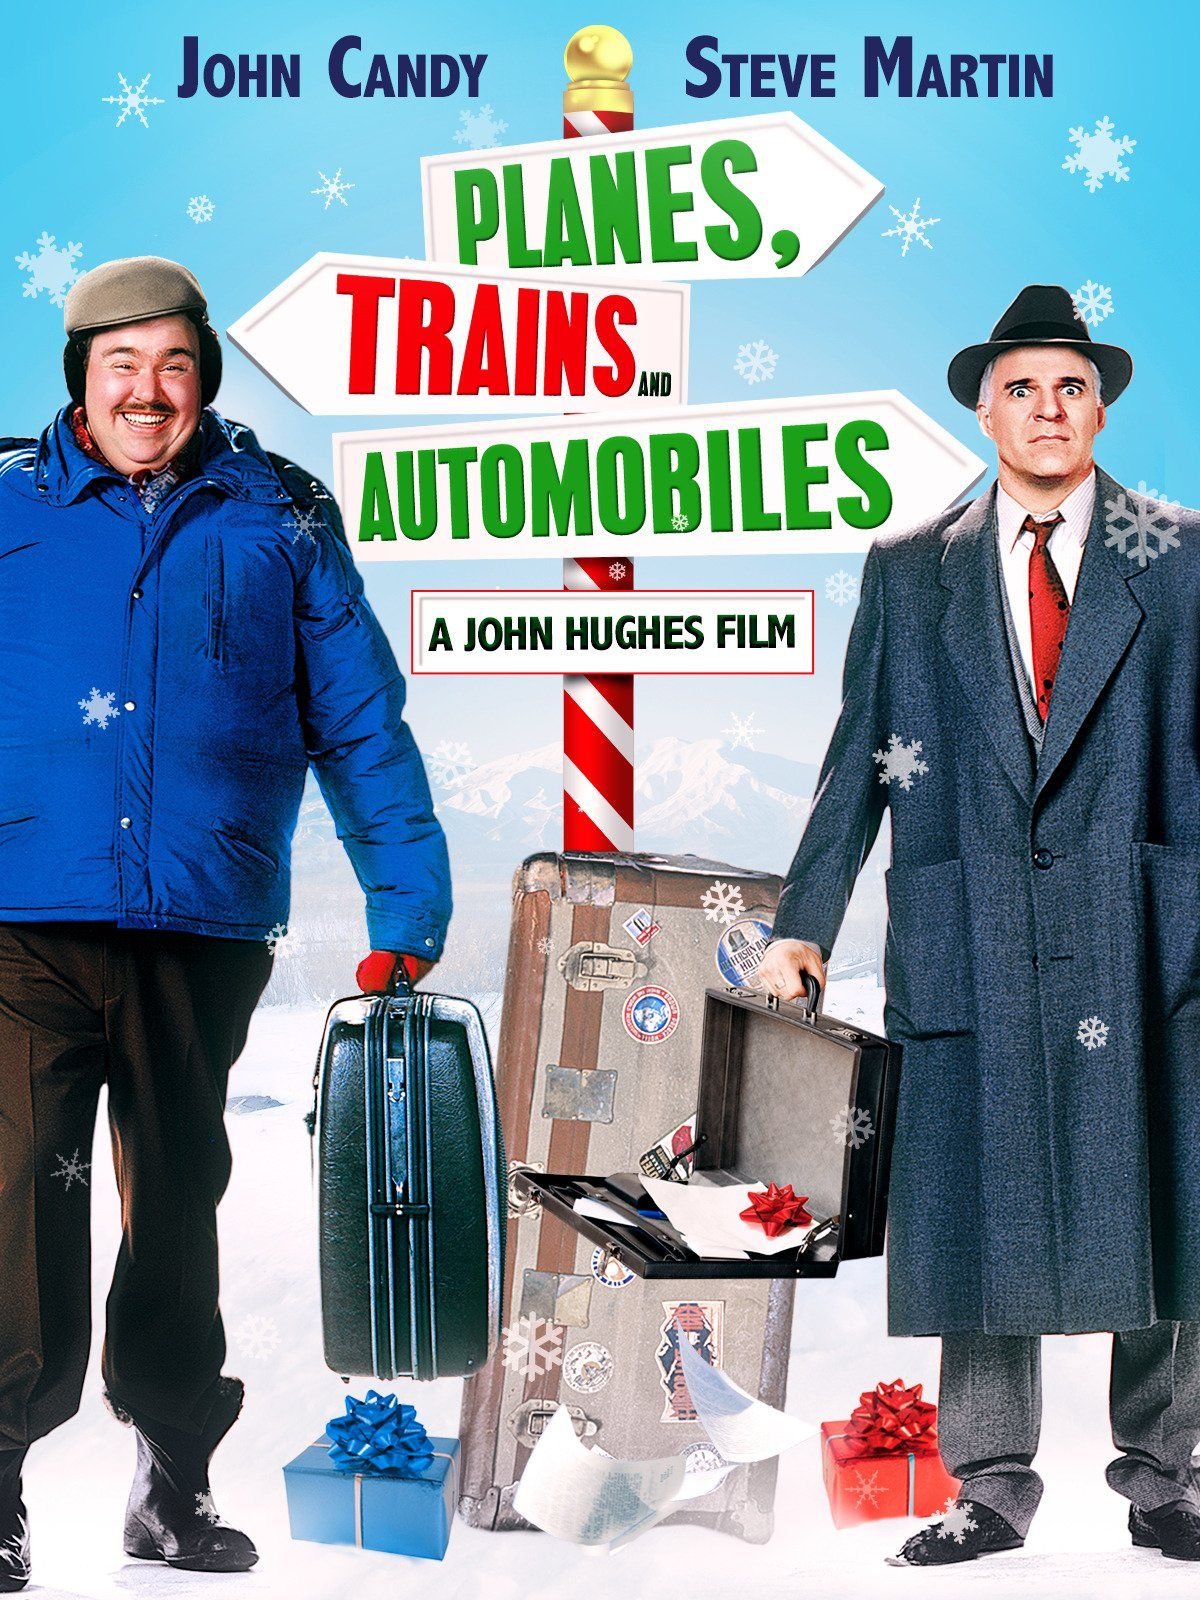 Most popular christmas movie of all time